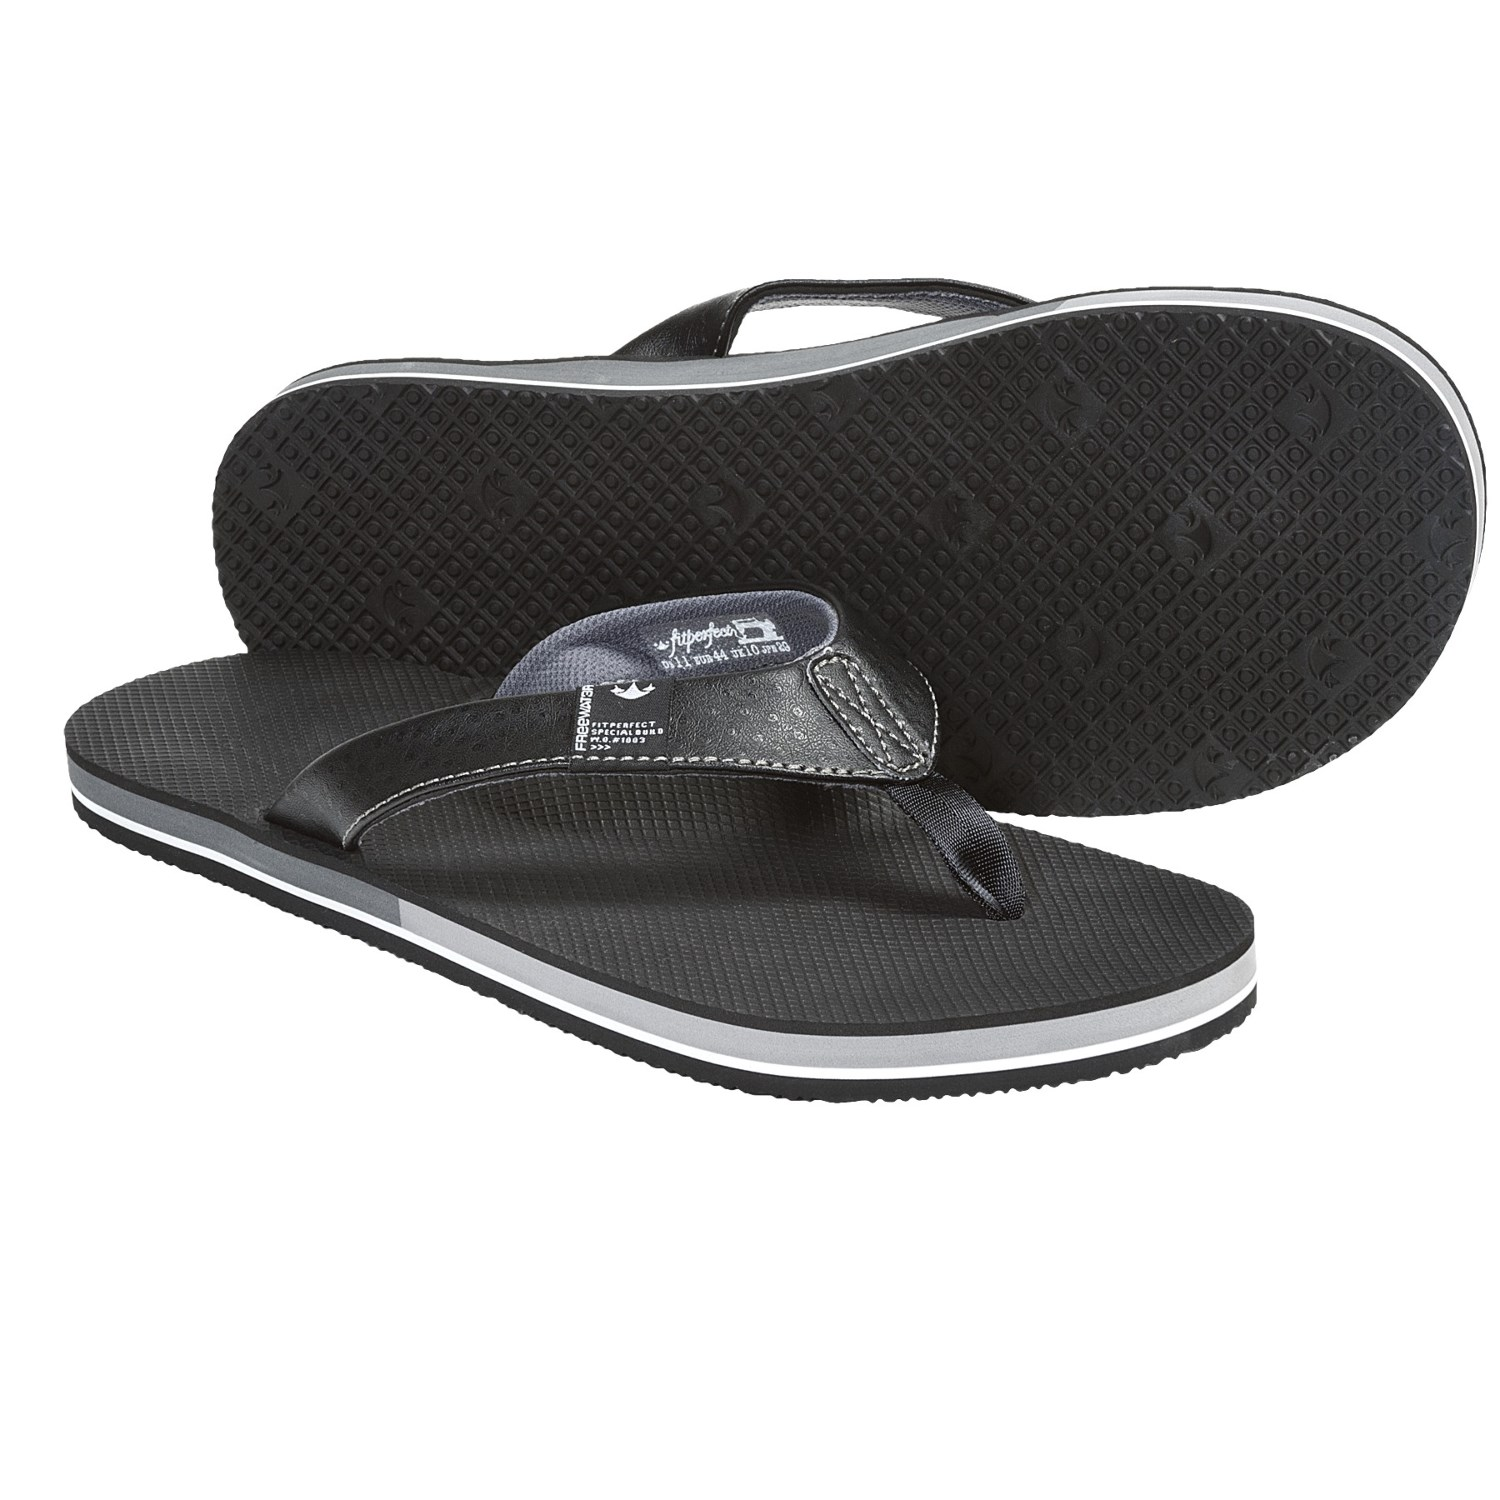 Freewaters The Dude Sandals For Men 5185n Save 55